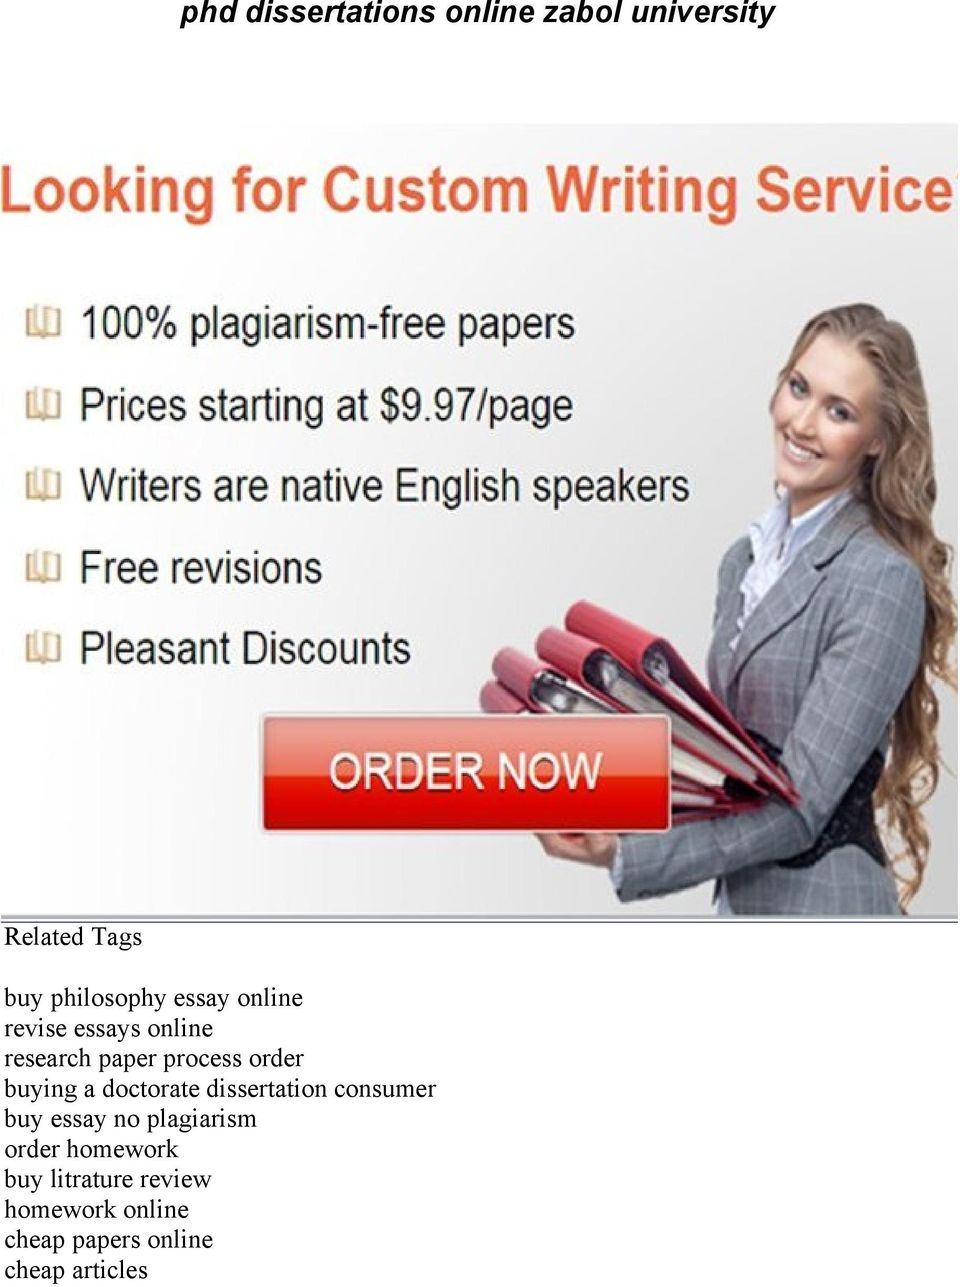 a doctorate dissertation consumer buy essay no plagiarism order